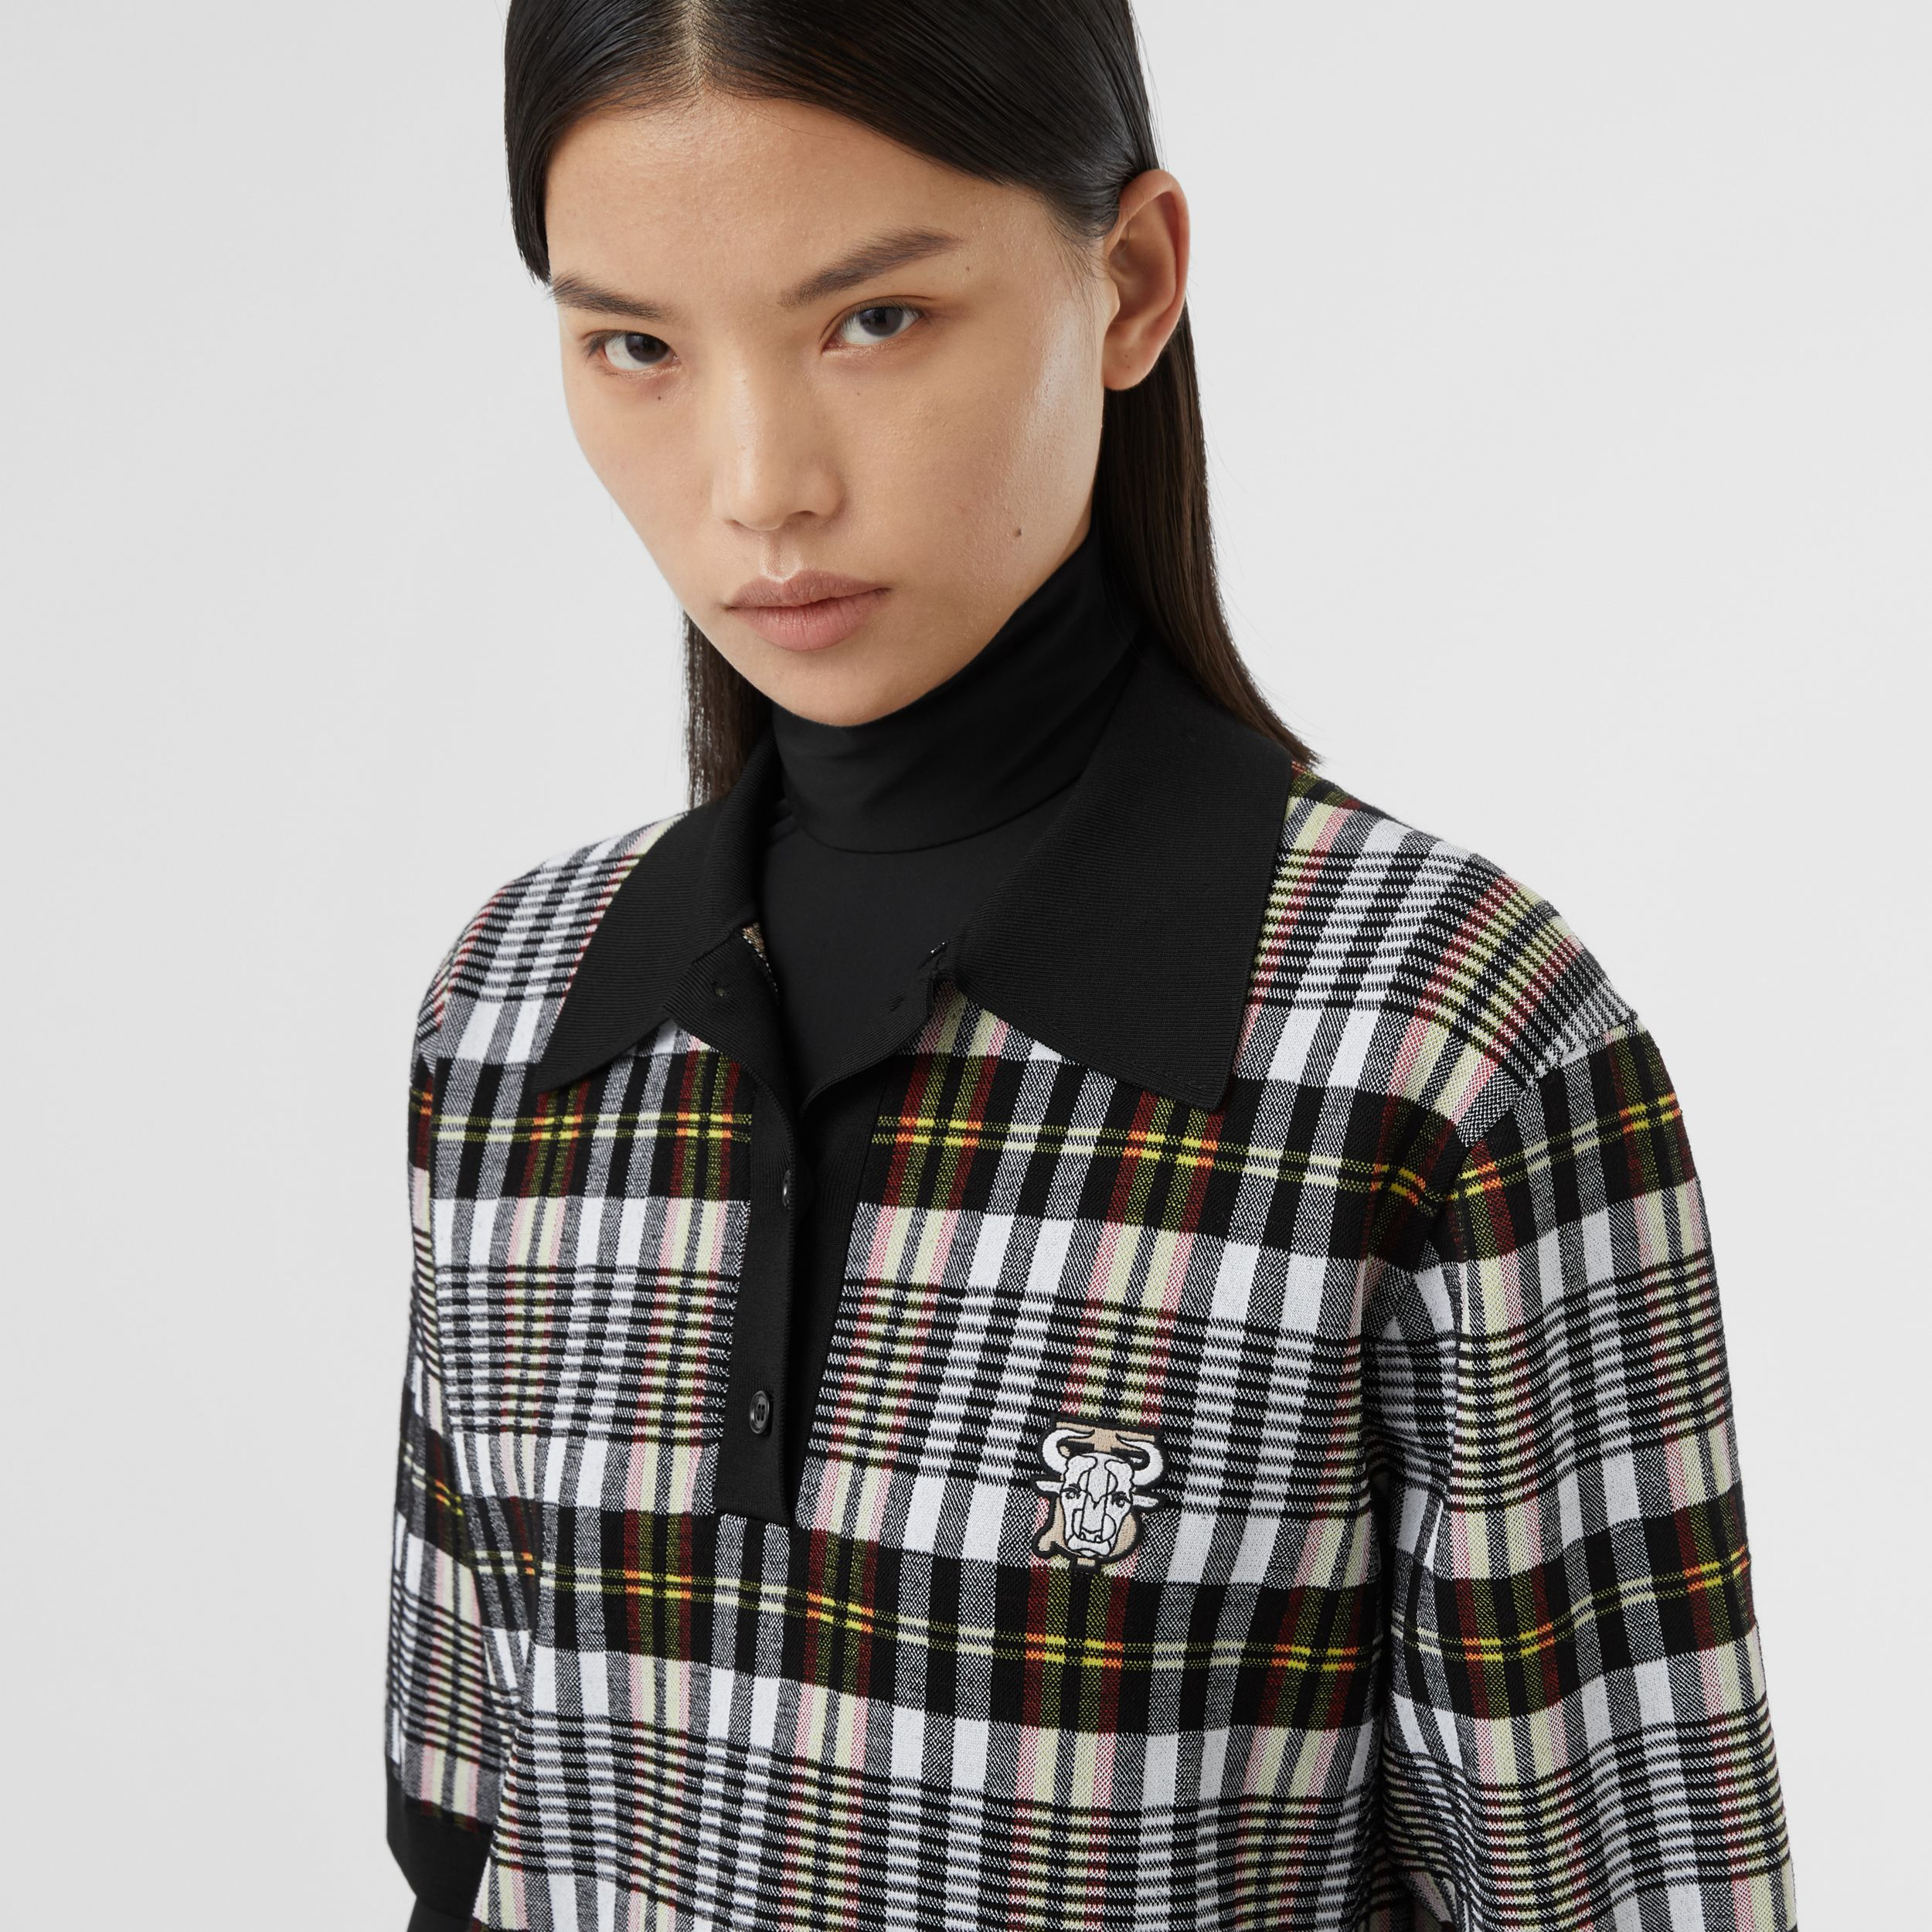 Monogram Motif Check Oversized Polo Shirt in Marigold Yellow - Women | Burberry - 2